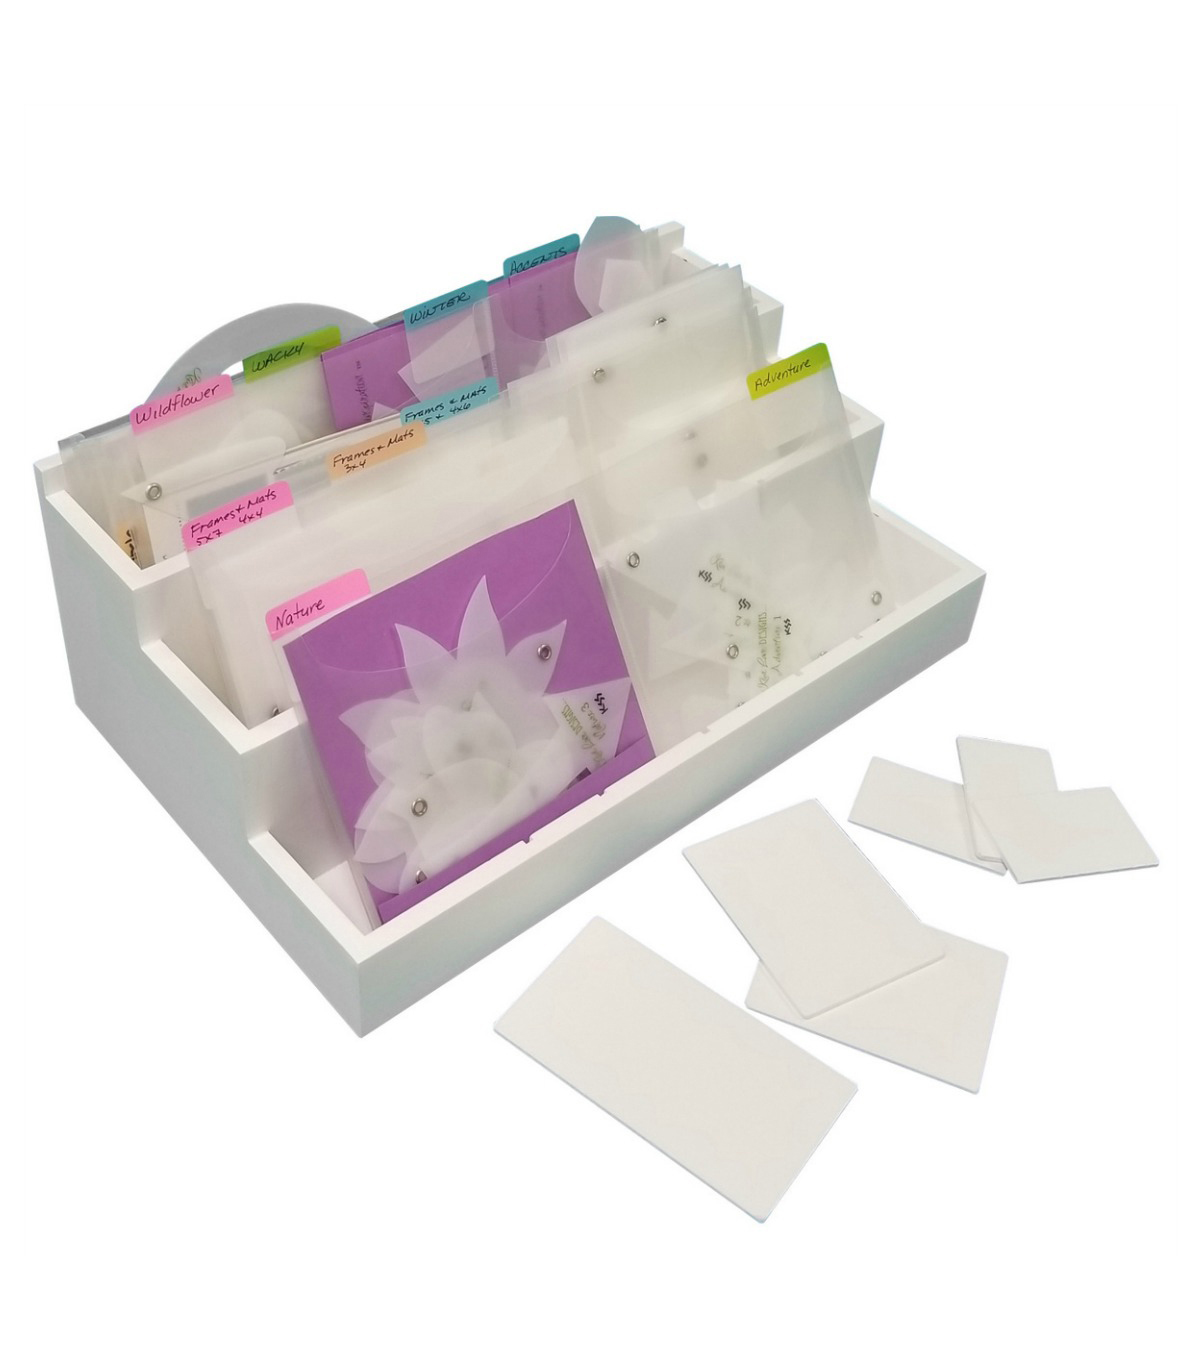 Die Stamp & Supply Organizer